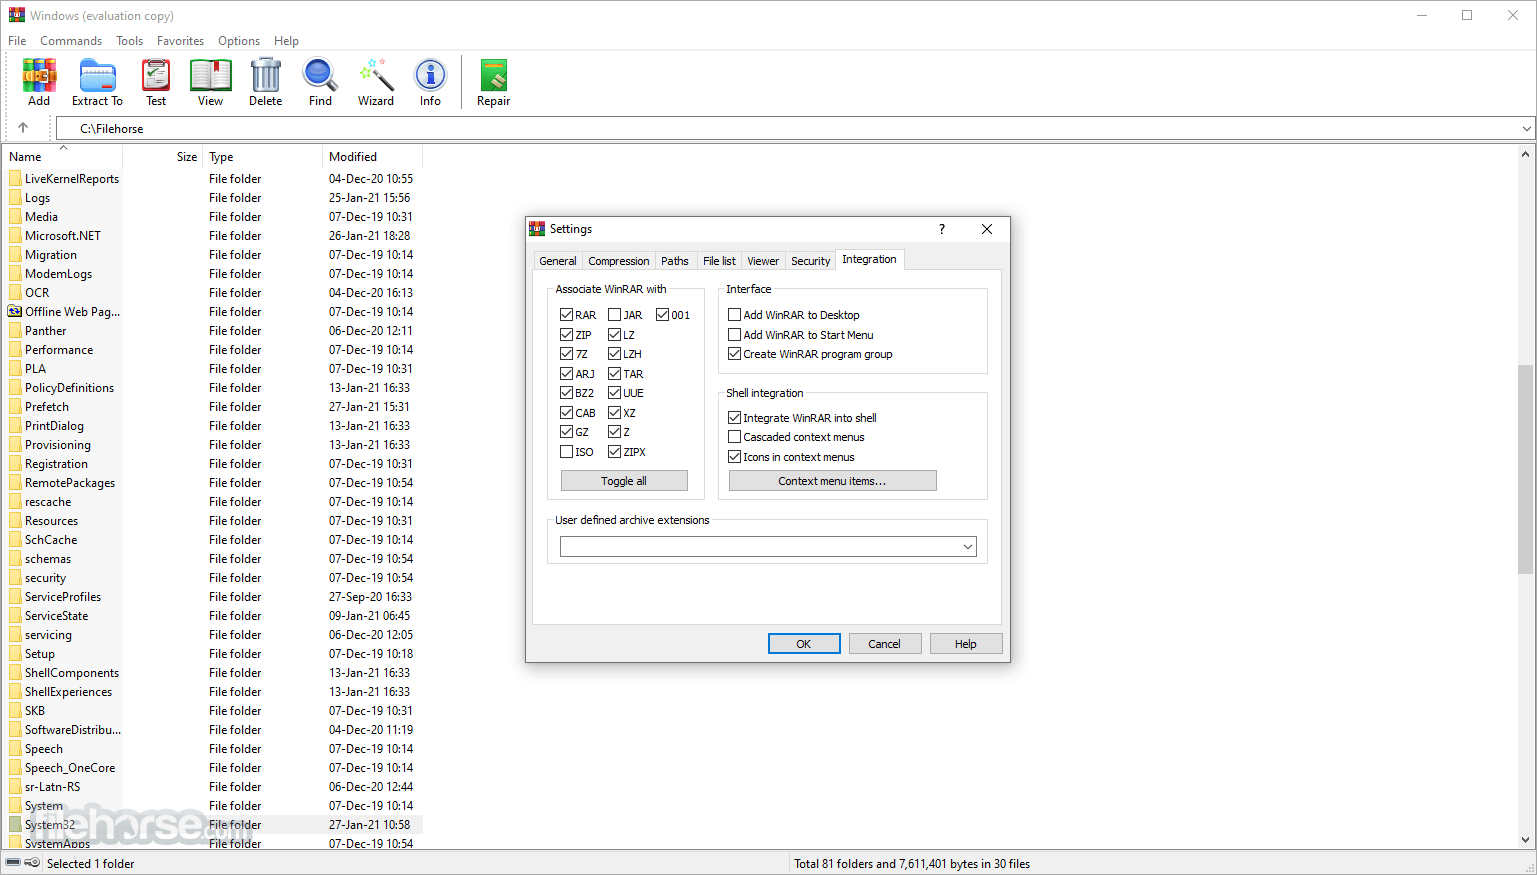 WinRAR 5.50 Beta 5 (32-bit) Screenshot 5